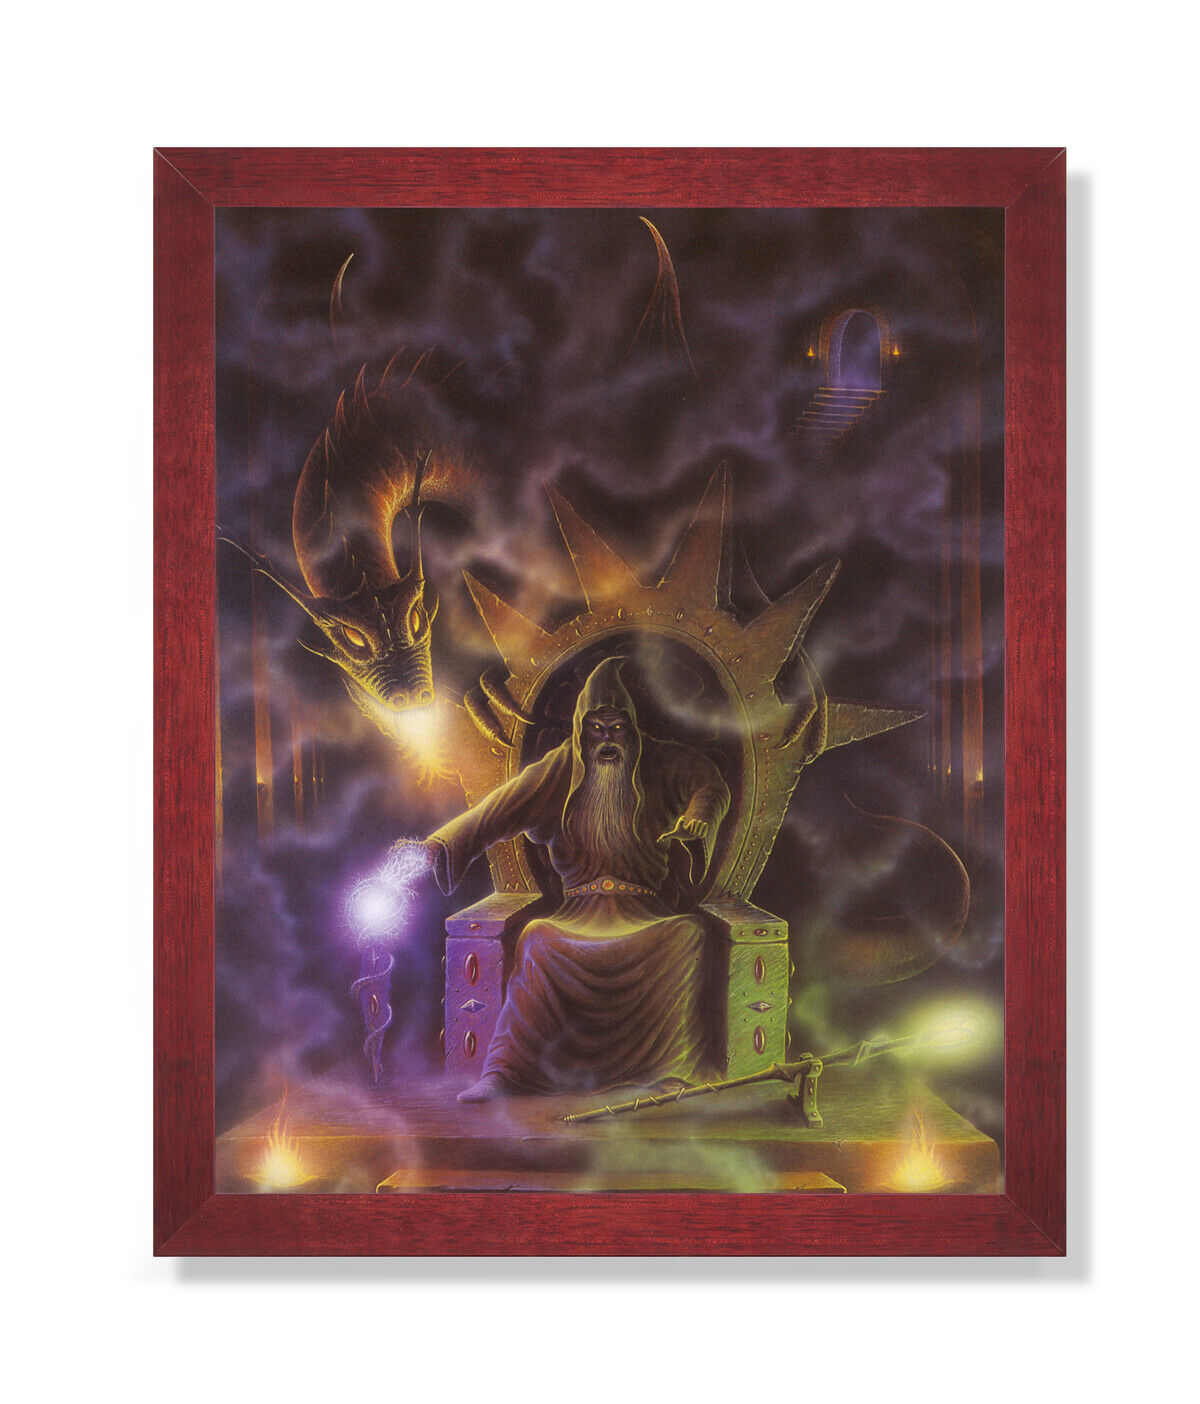 Dragon Fire Medieval Wizard   4 Wall Picture Cherry Framed Art Print